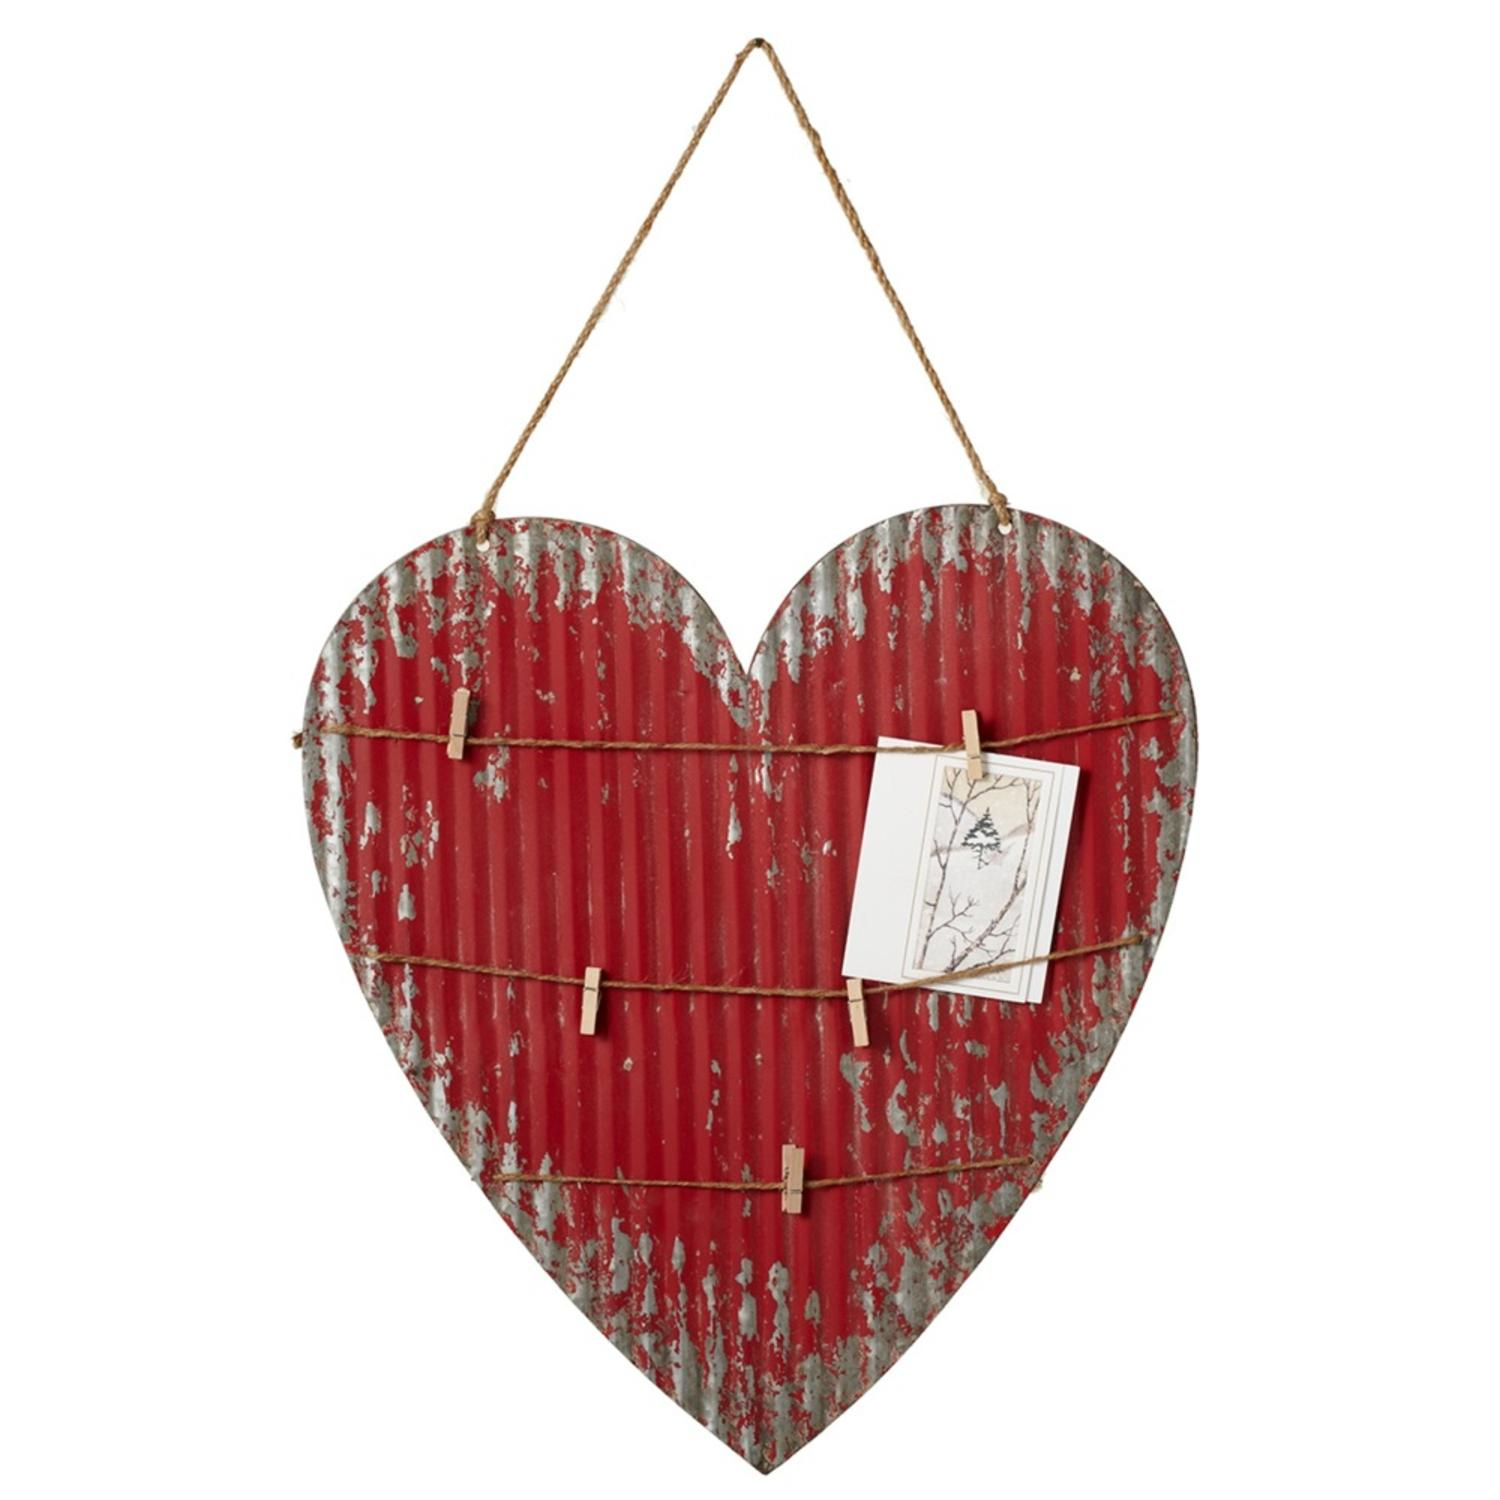 Set Of 2 Distressed Red Corrugated Heart Shaped Metal Message Board Throughout Well Known 2 Piece Heart Shaped Fan Wall Decor Sets (Gallery 2 of 20)